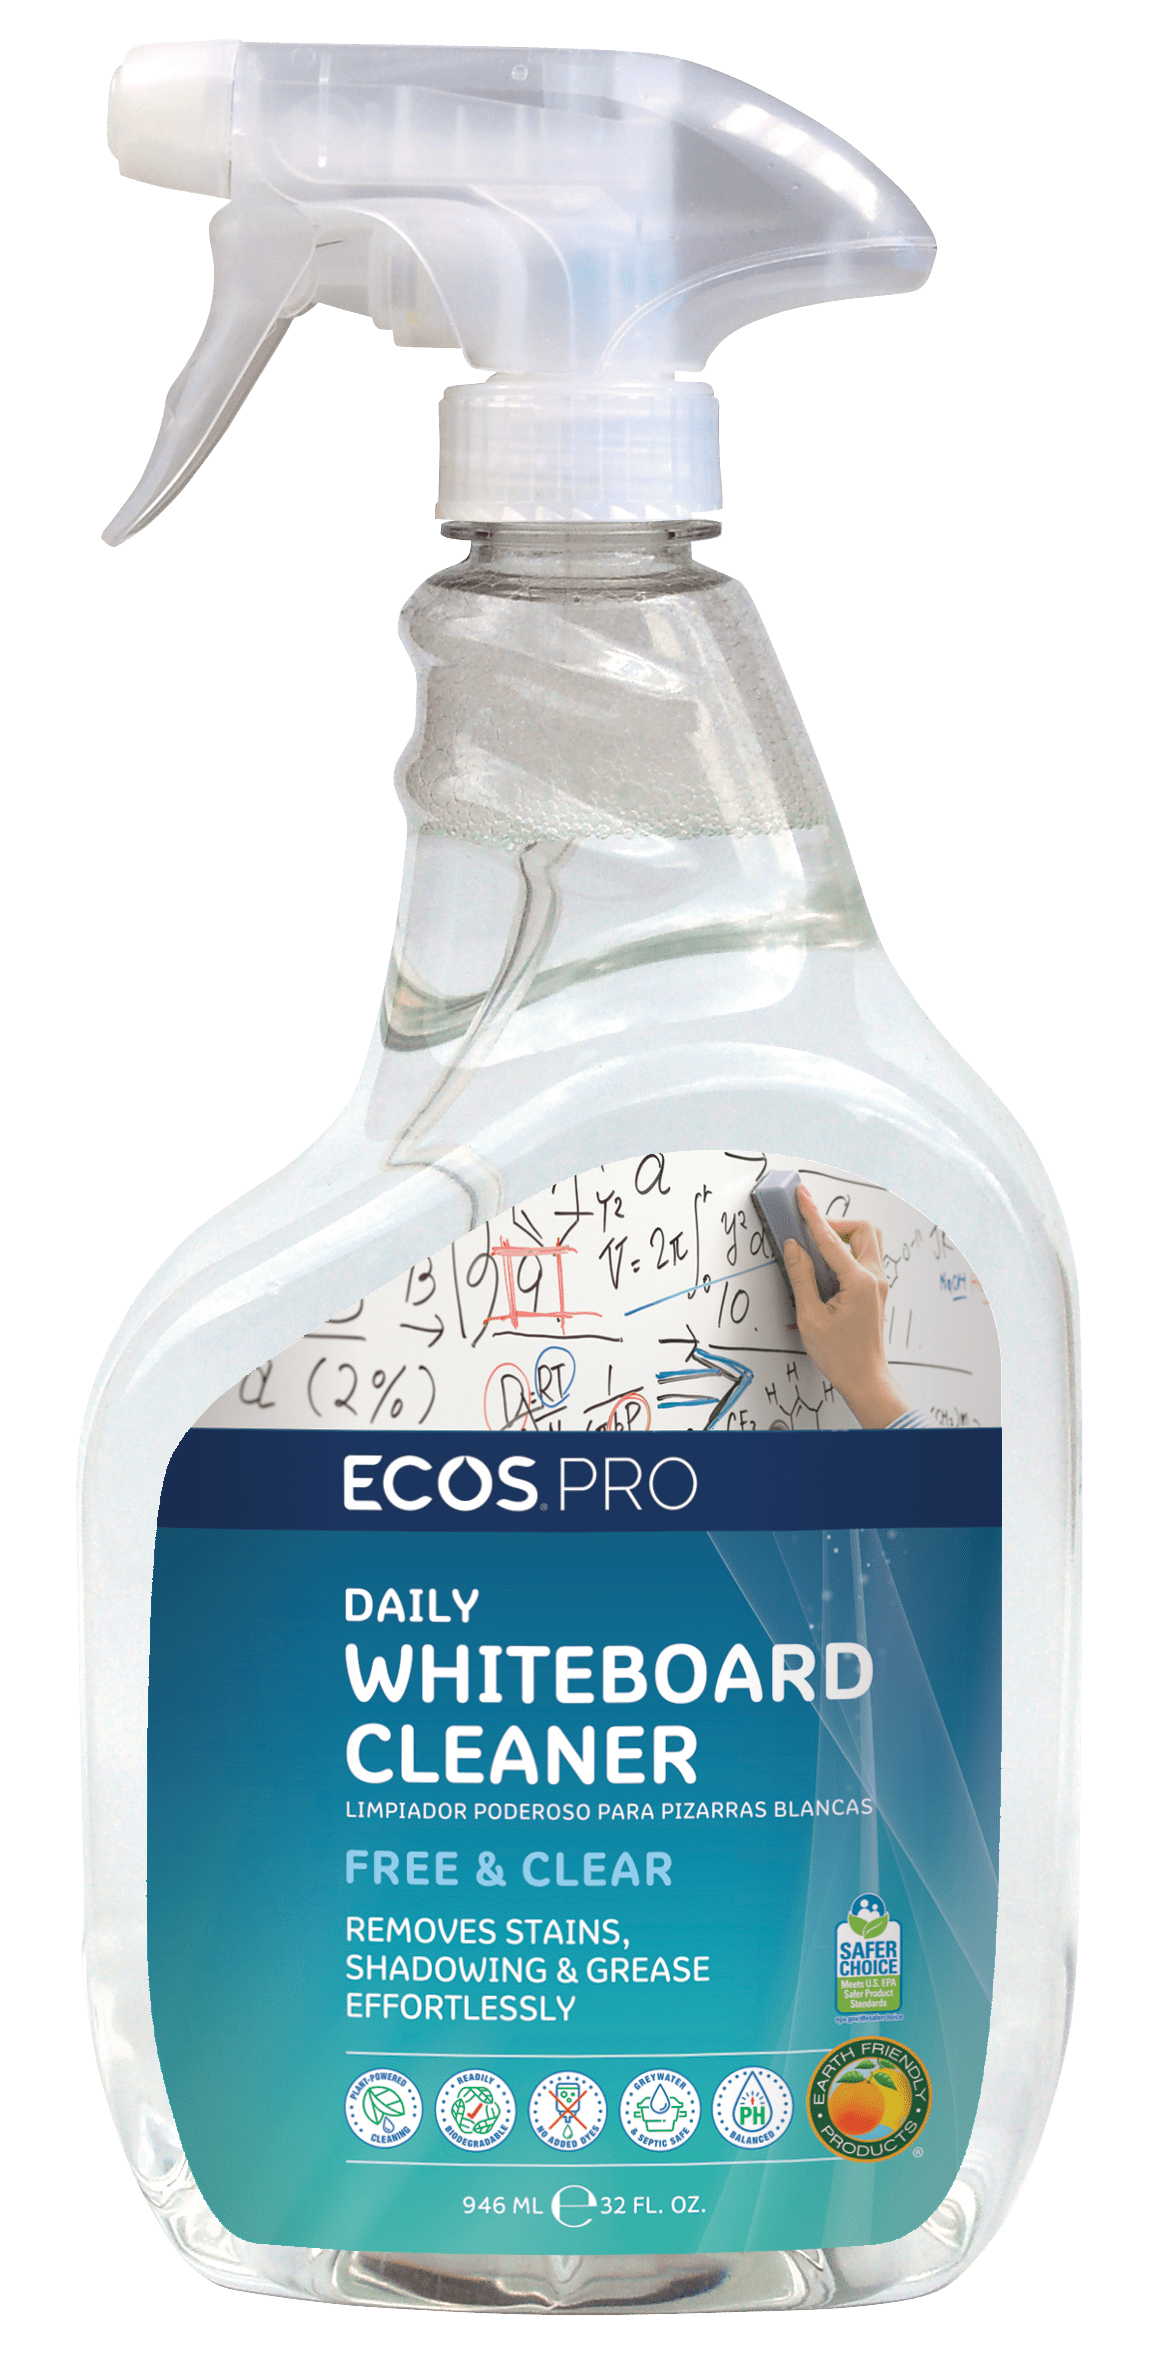 ECOS PRO - Everyday Whiteboard Cleaner